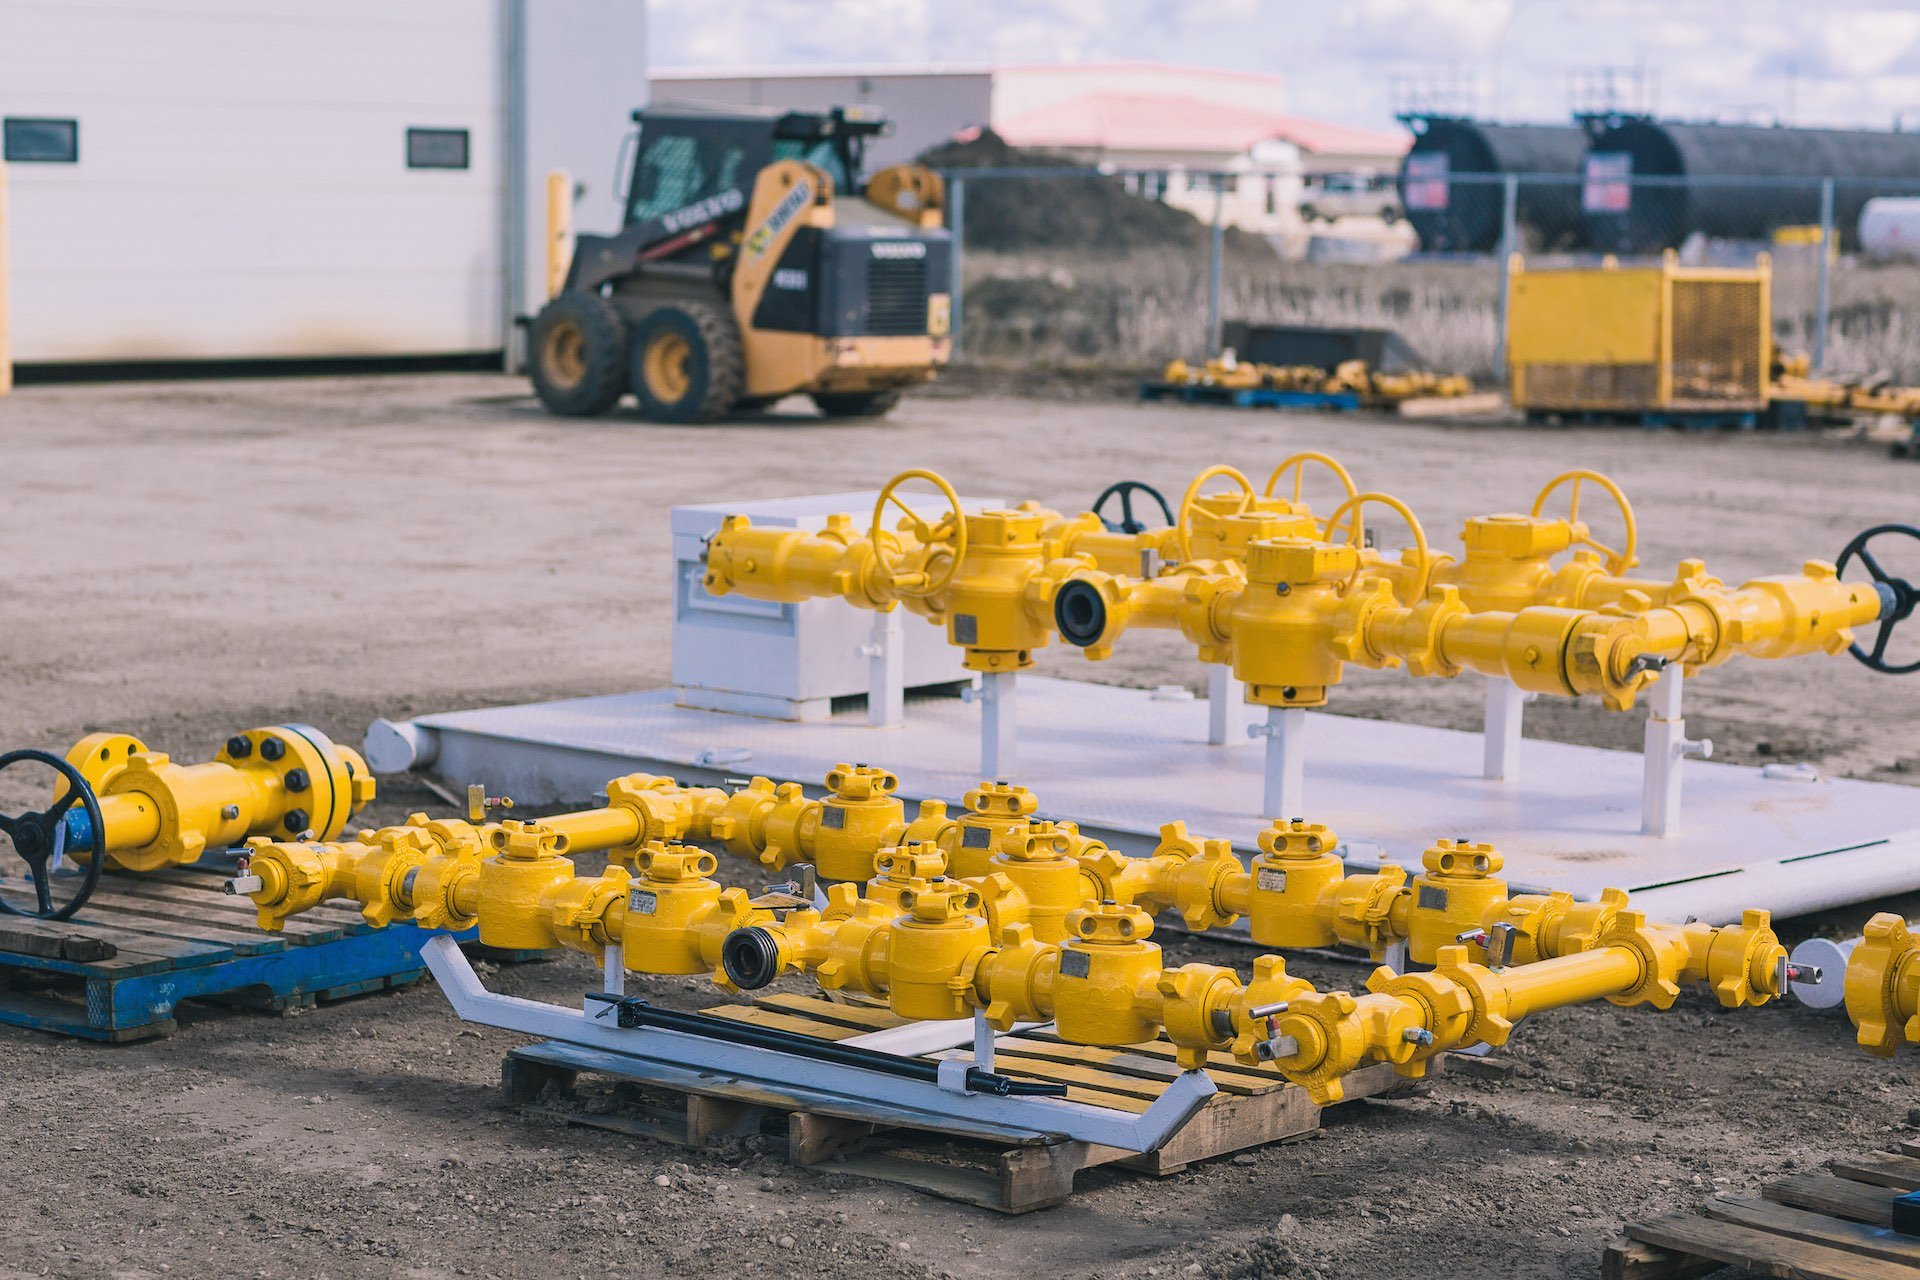 Oilfield rental equipment, 10k rentals, oilfield equiment